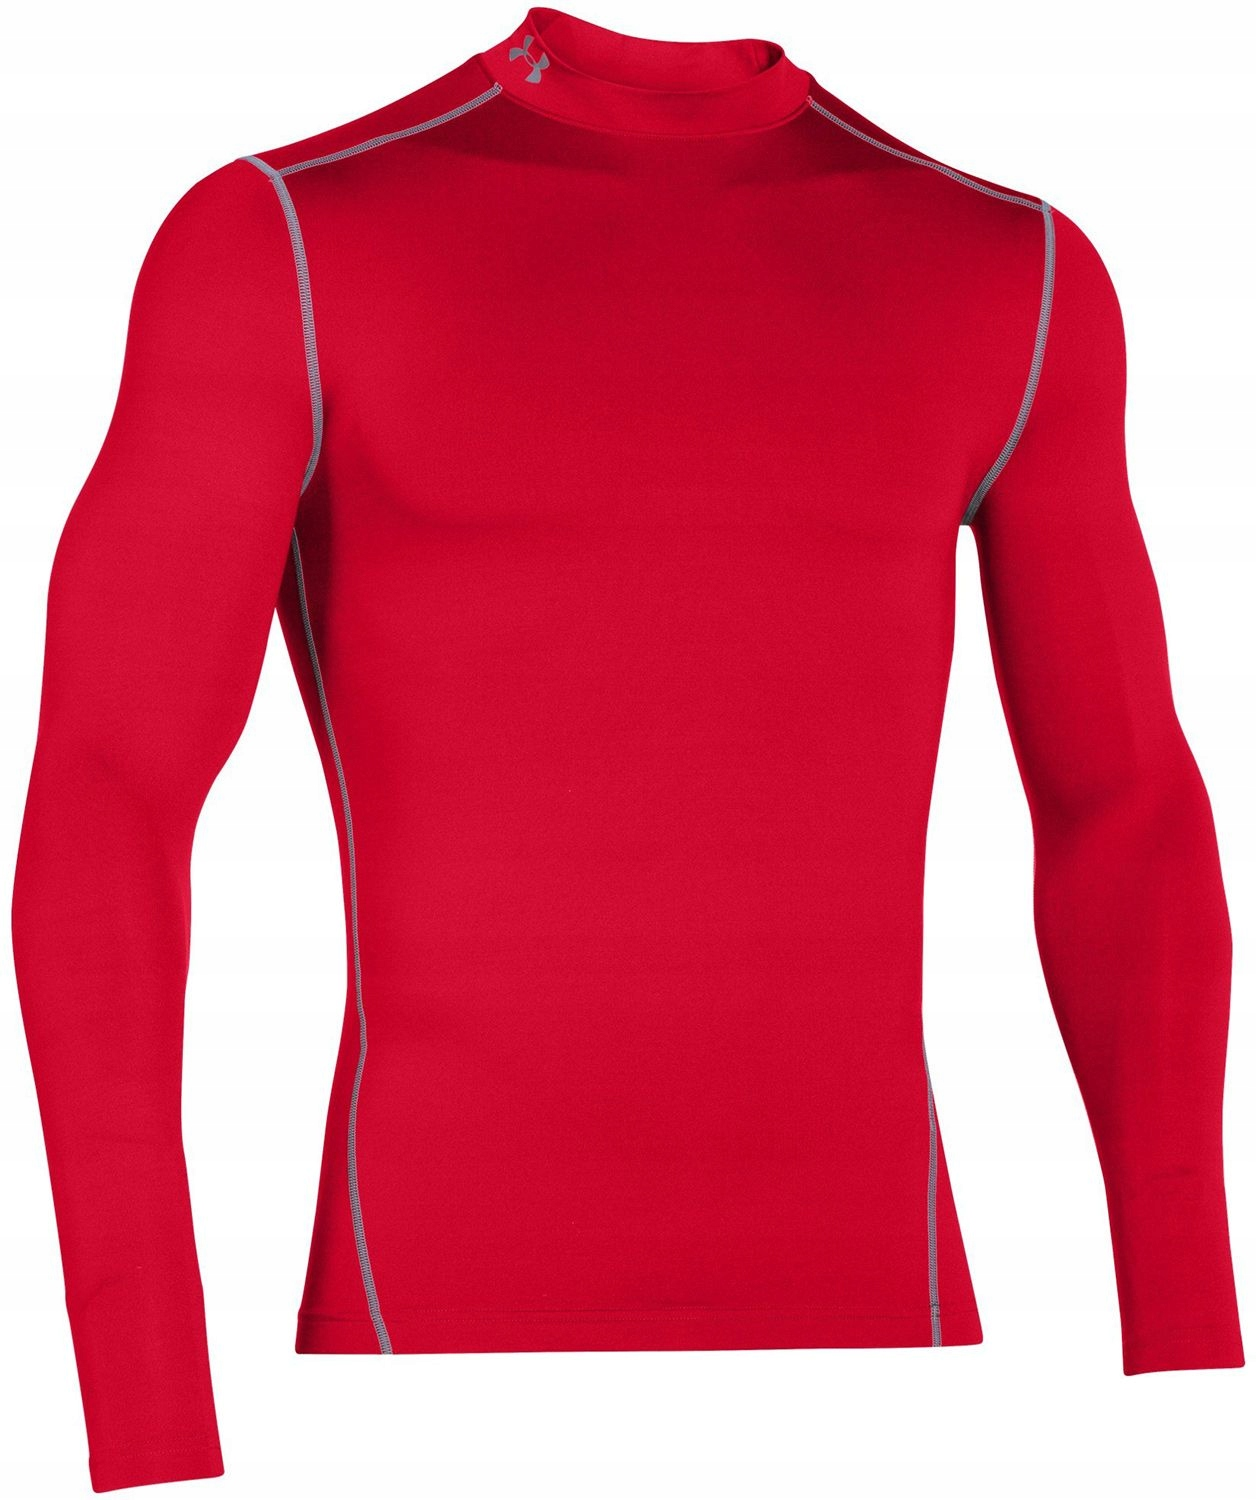 Under Armour ColdGear Armour Mock Red 1265648 # L